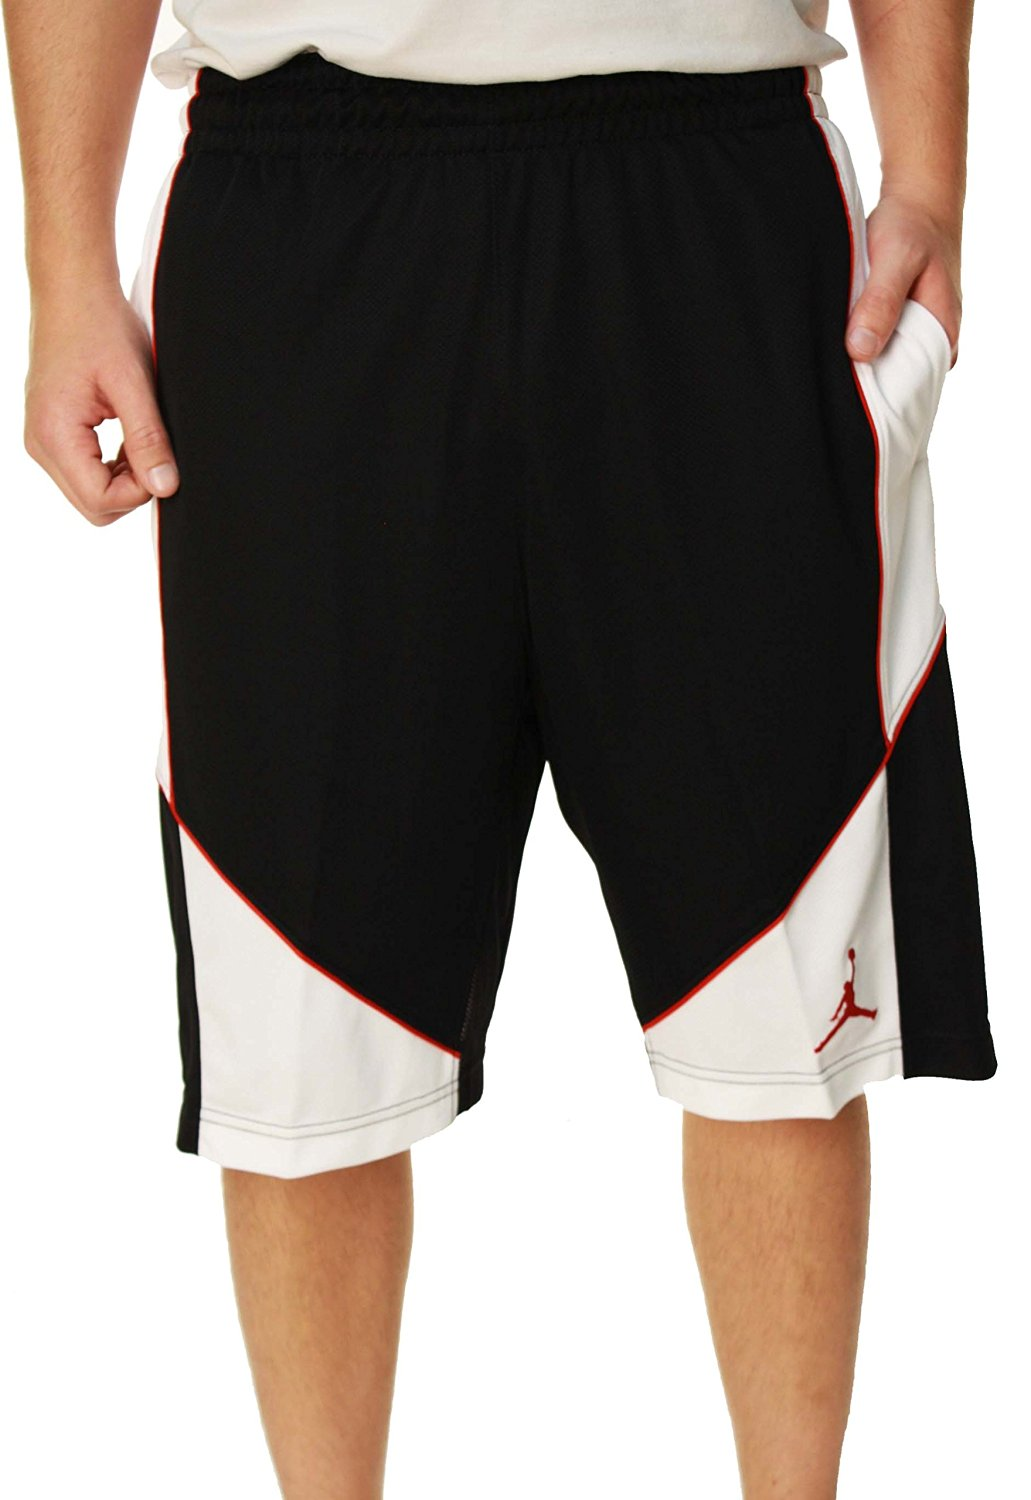 36a1c70a577 Get Quotations · Nike AIR JORDAN AERO MANIA Black White Basketball Shorts  (S)